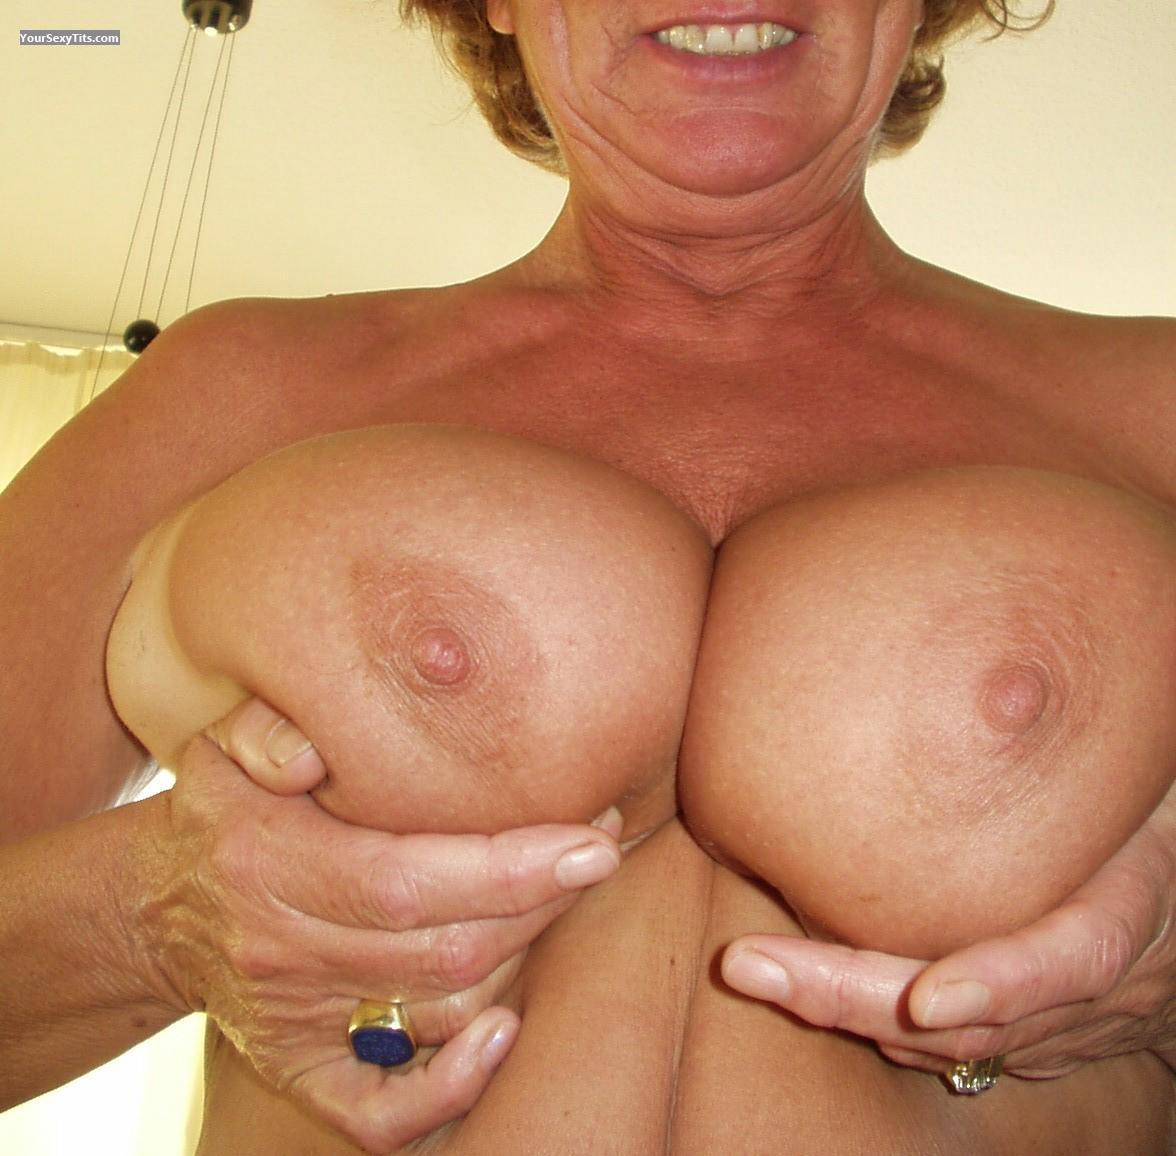 Tit Flash: Big Tits - Maren from Netherlands